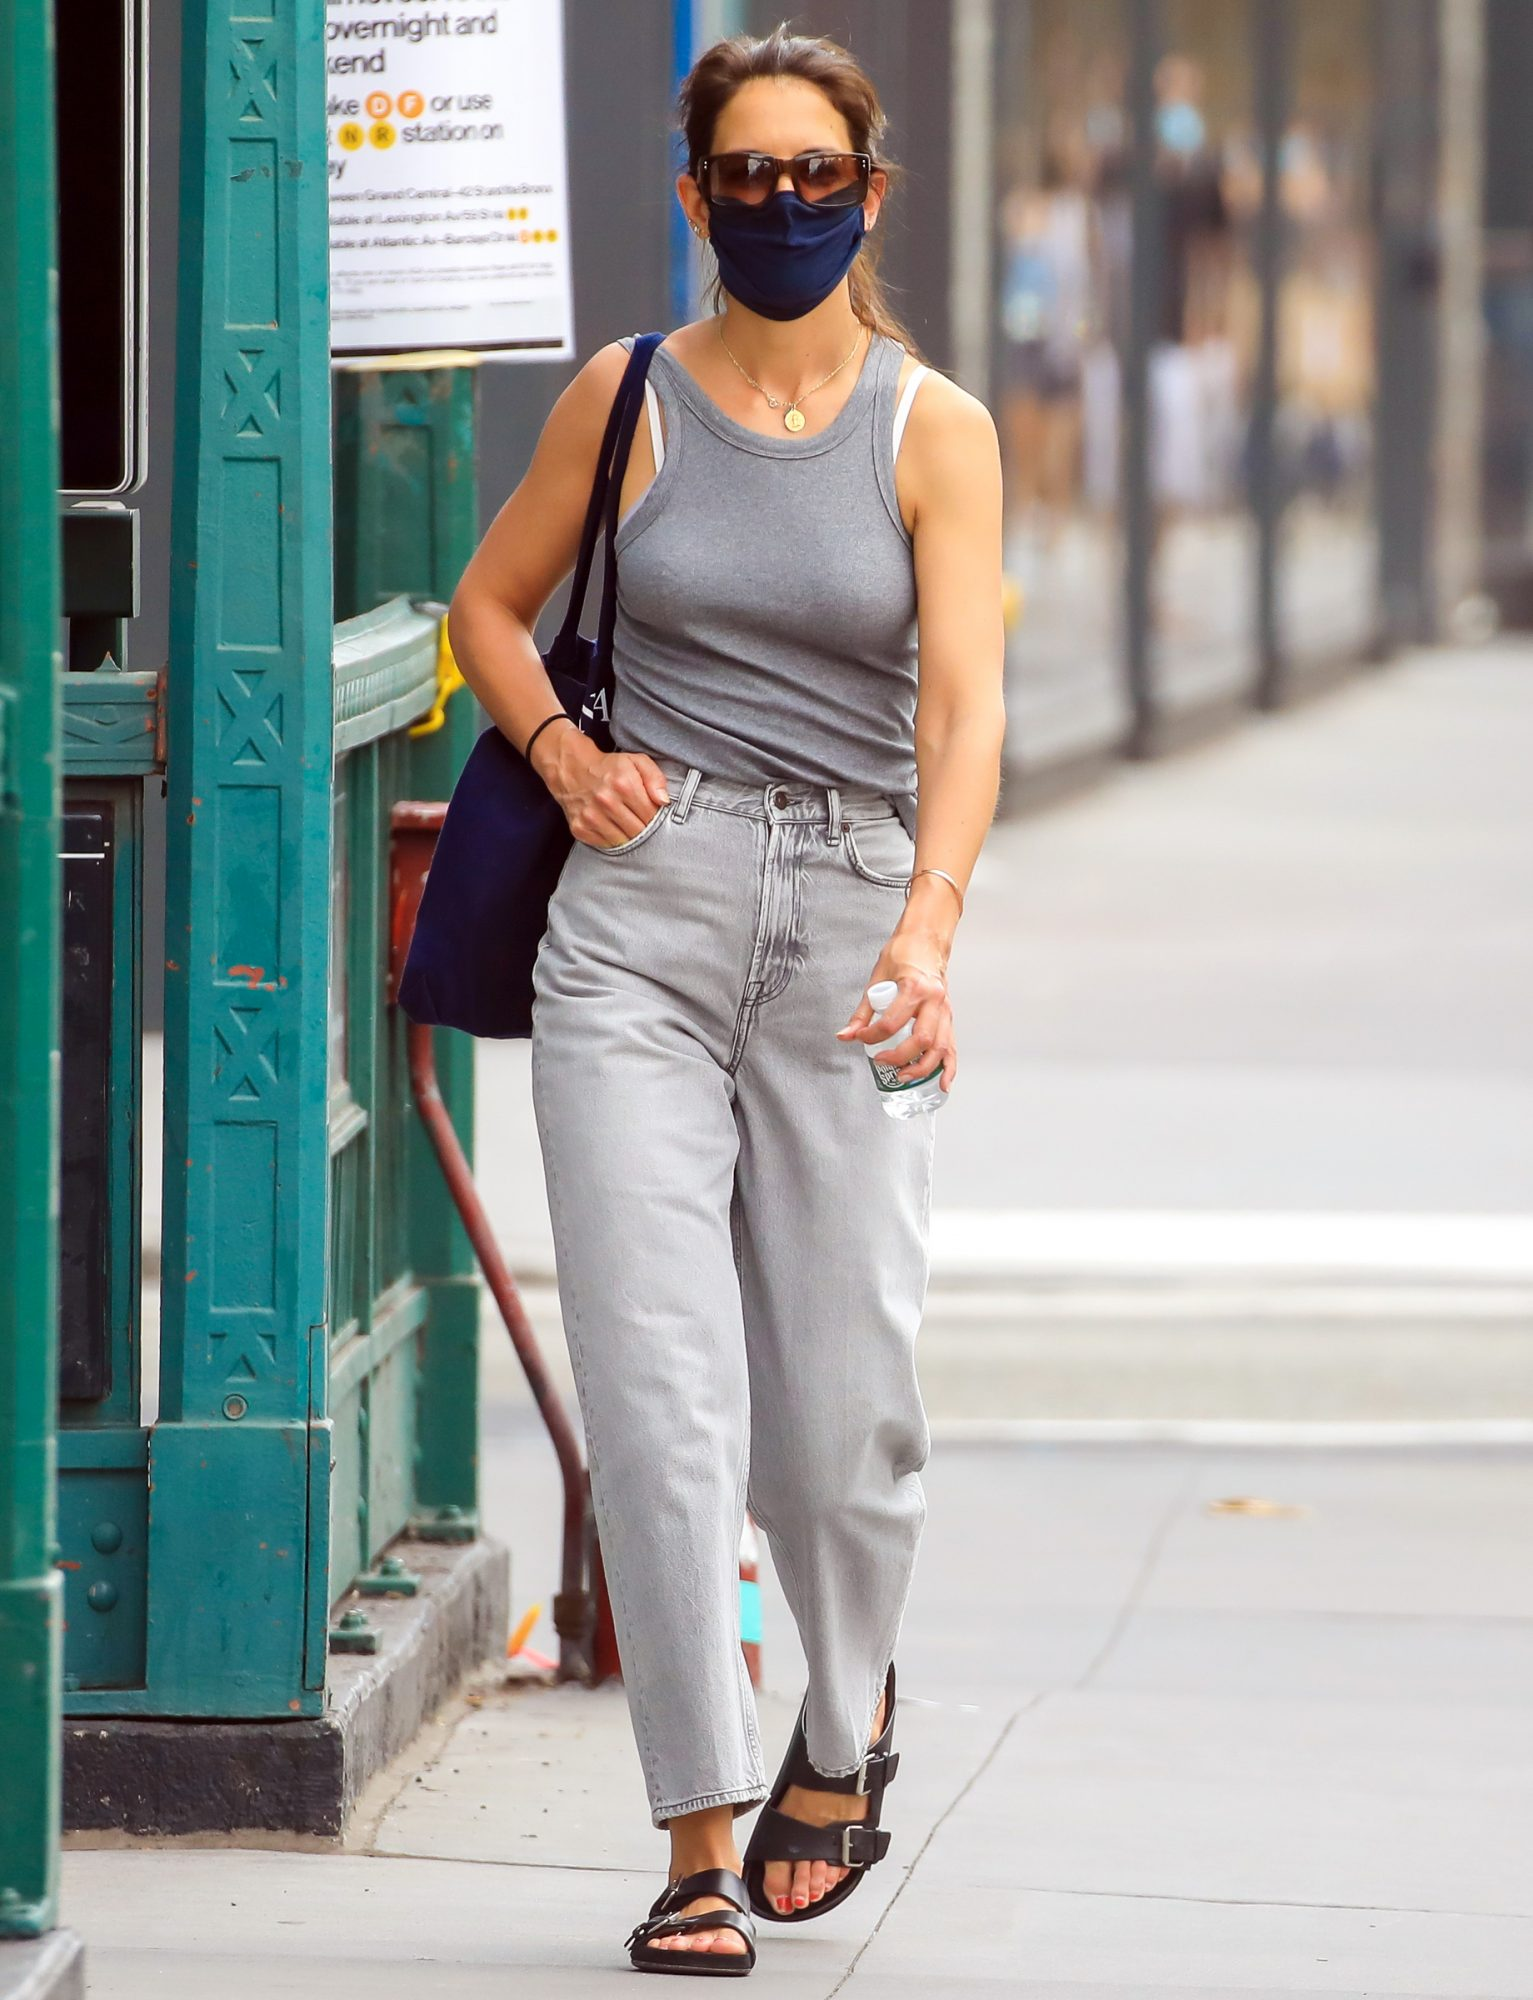 NEW YORK, NEW YORK - AUGUST 25: Katie Holmes is seen in SoHo on August 25, 2020 in New York City